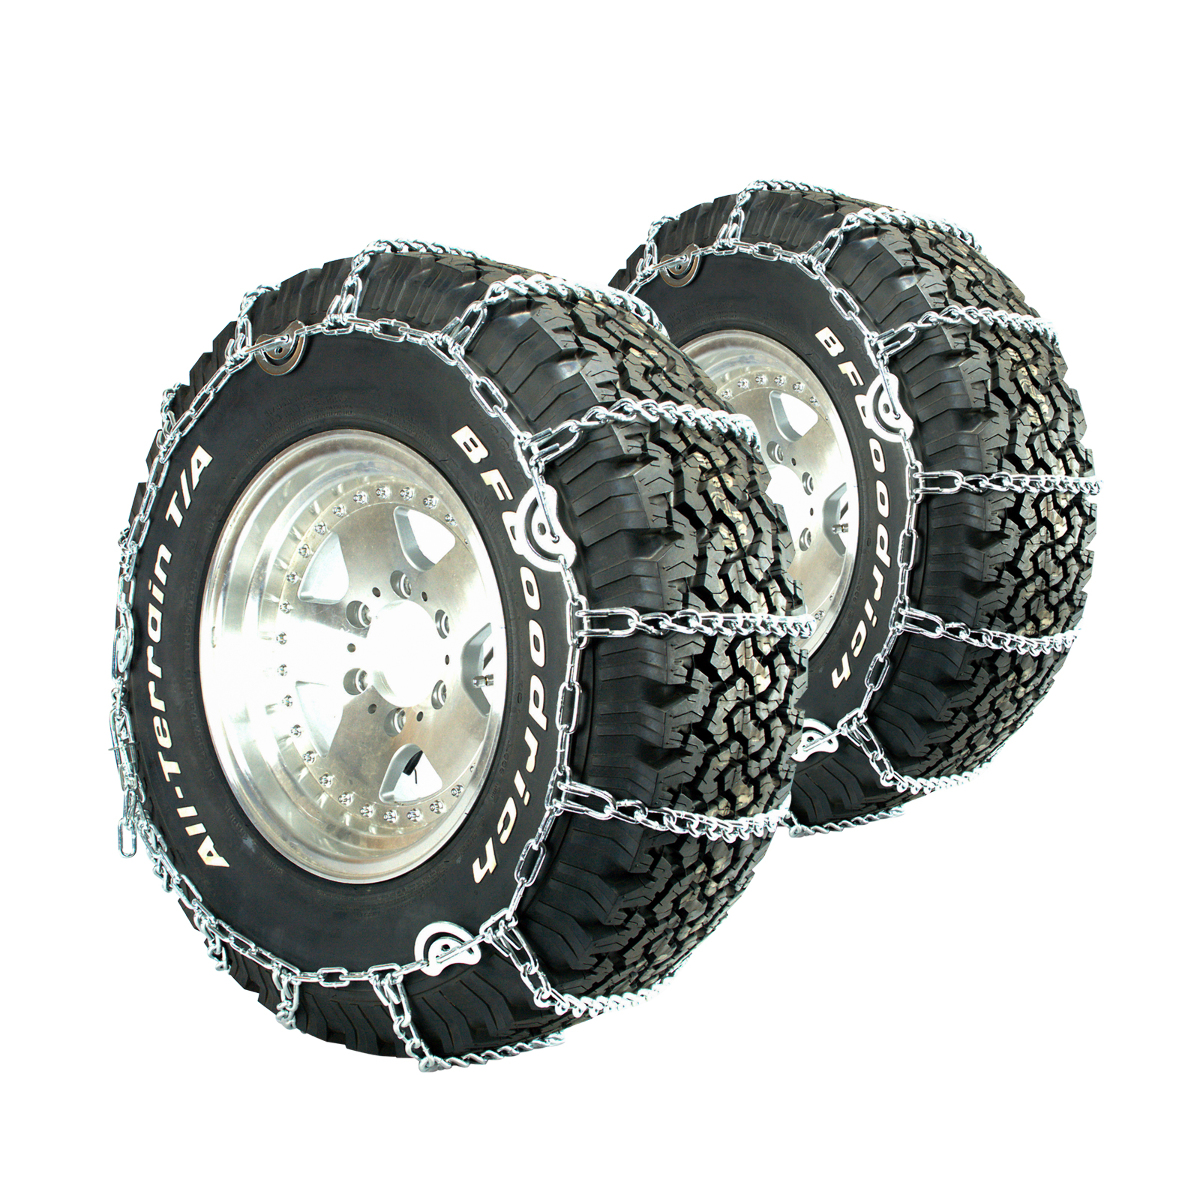 Titan V-Bar Tire Chains CAM Type Ice or Snow Covered Roads 5.5mm 245//75-17